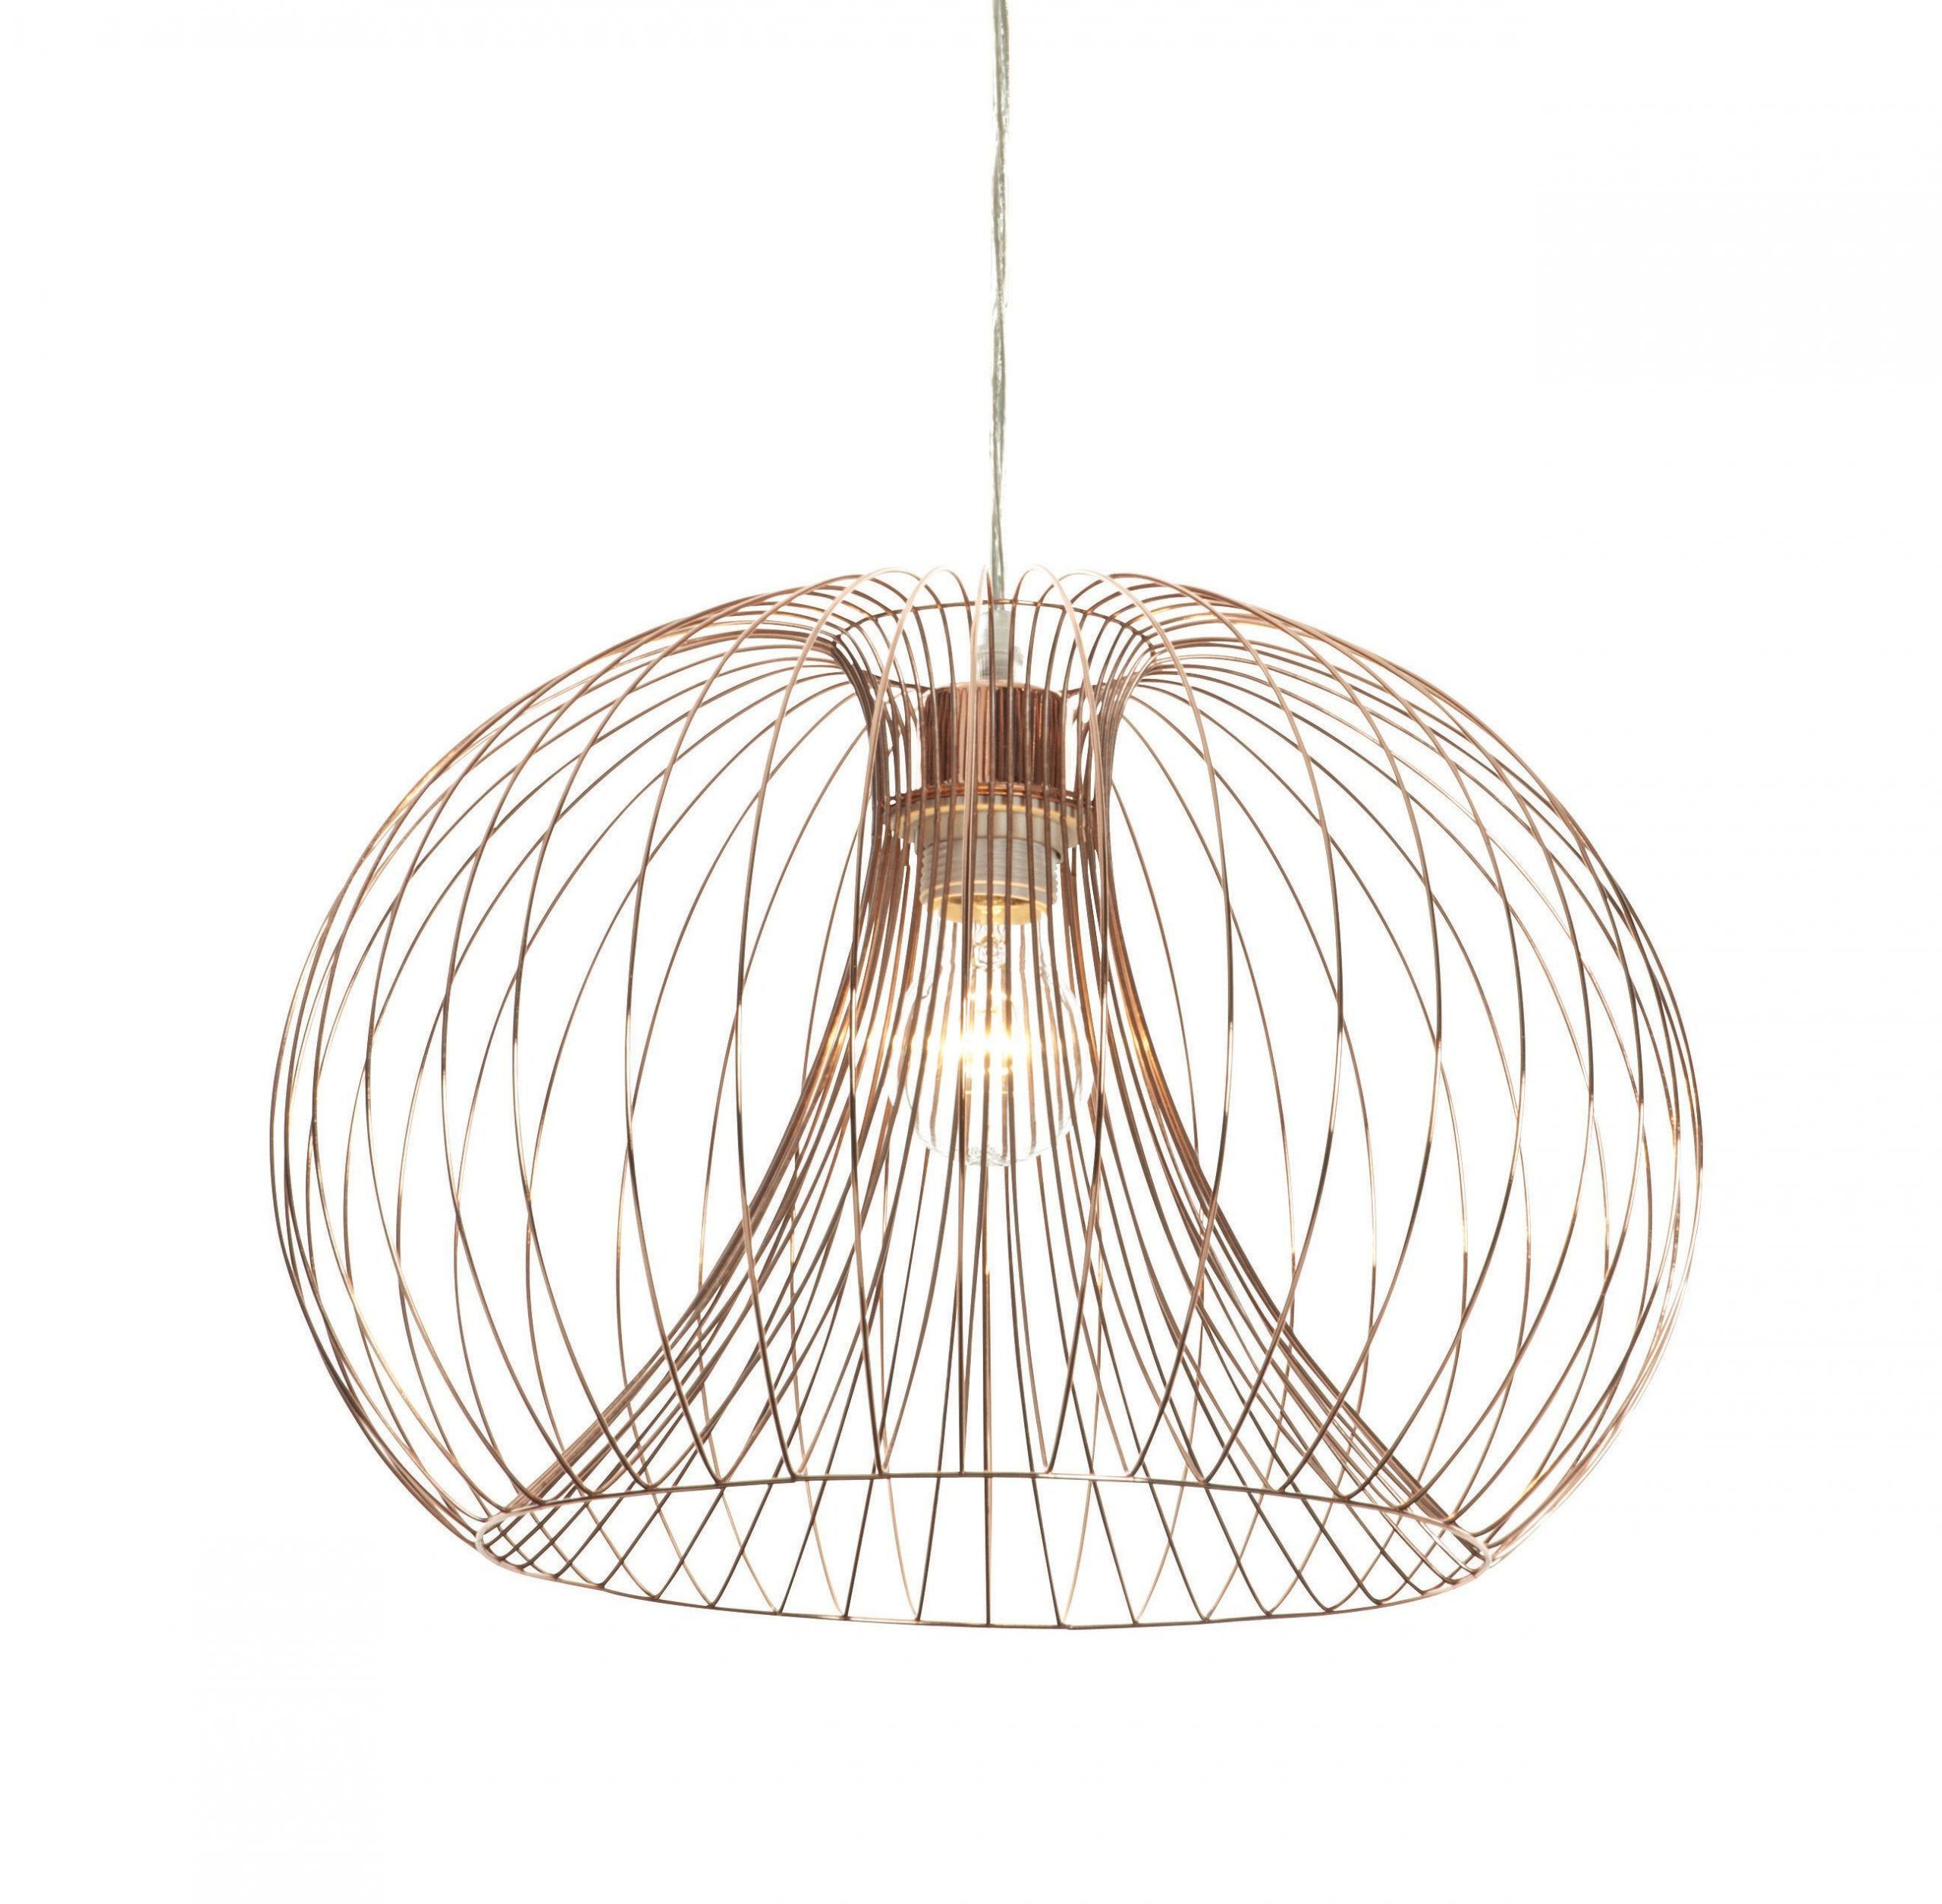 Jonas Copper Wire Pendant Ceiling Light Departments Diy At B Q Pinpon In 2020 Glass Ceiling Lights Bedroom Ceiling Light Light Fixtures Bedroom Ceiling